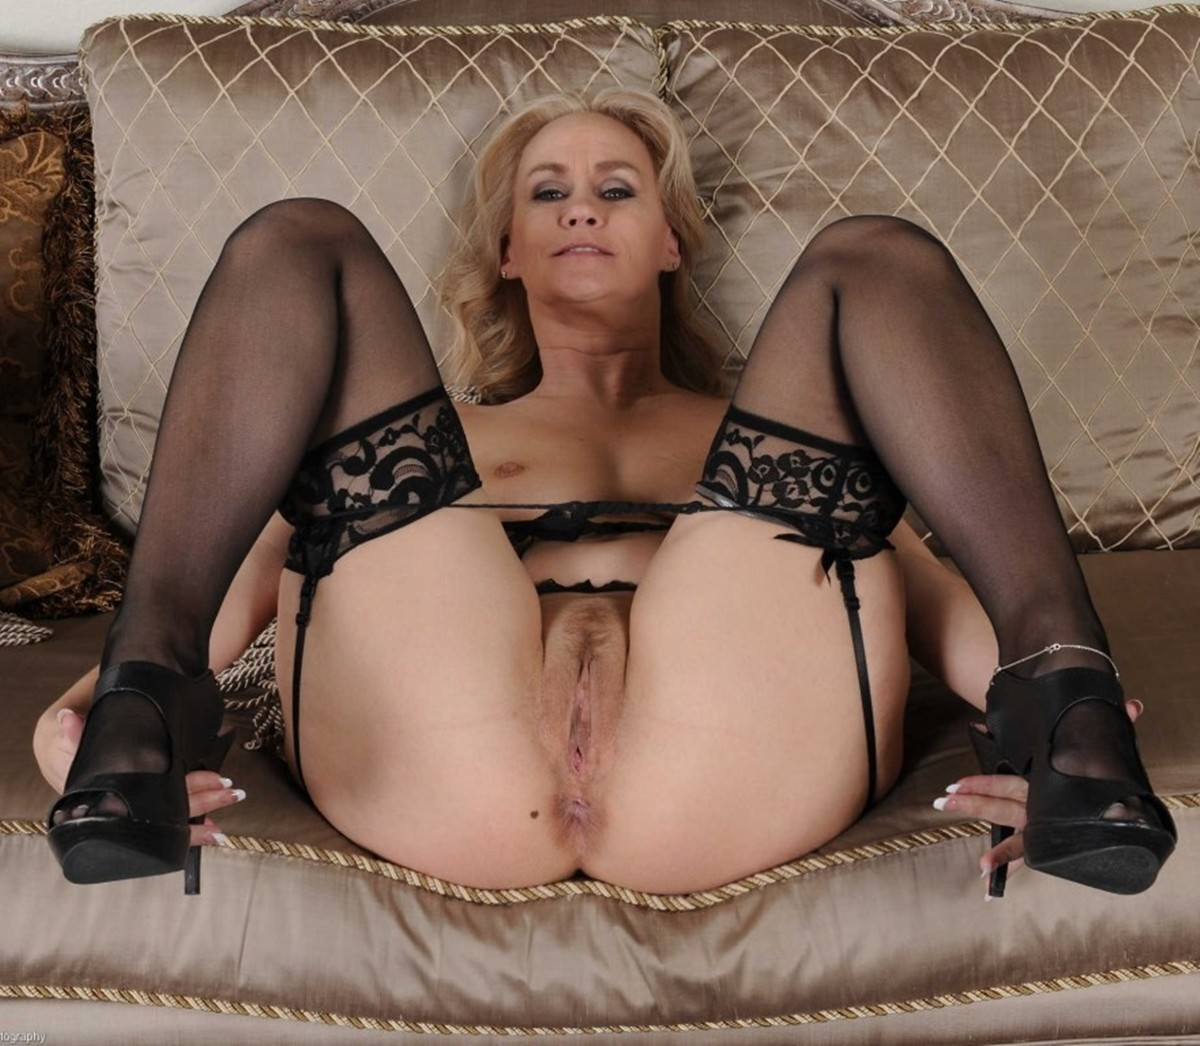 Agree, this mature bra pantyhose